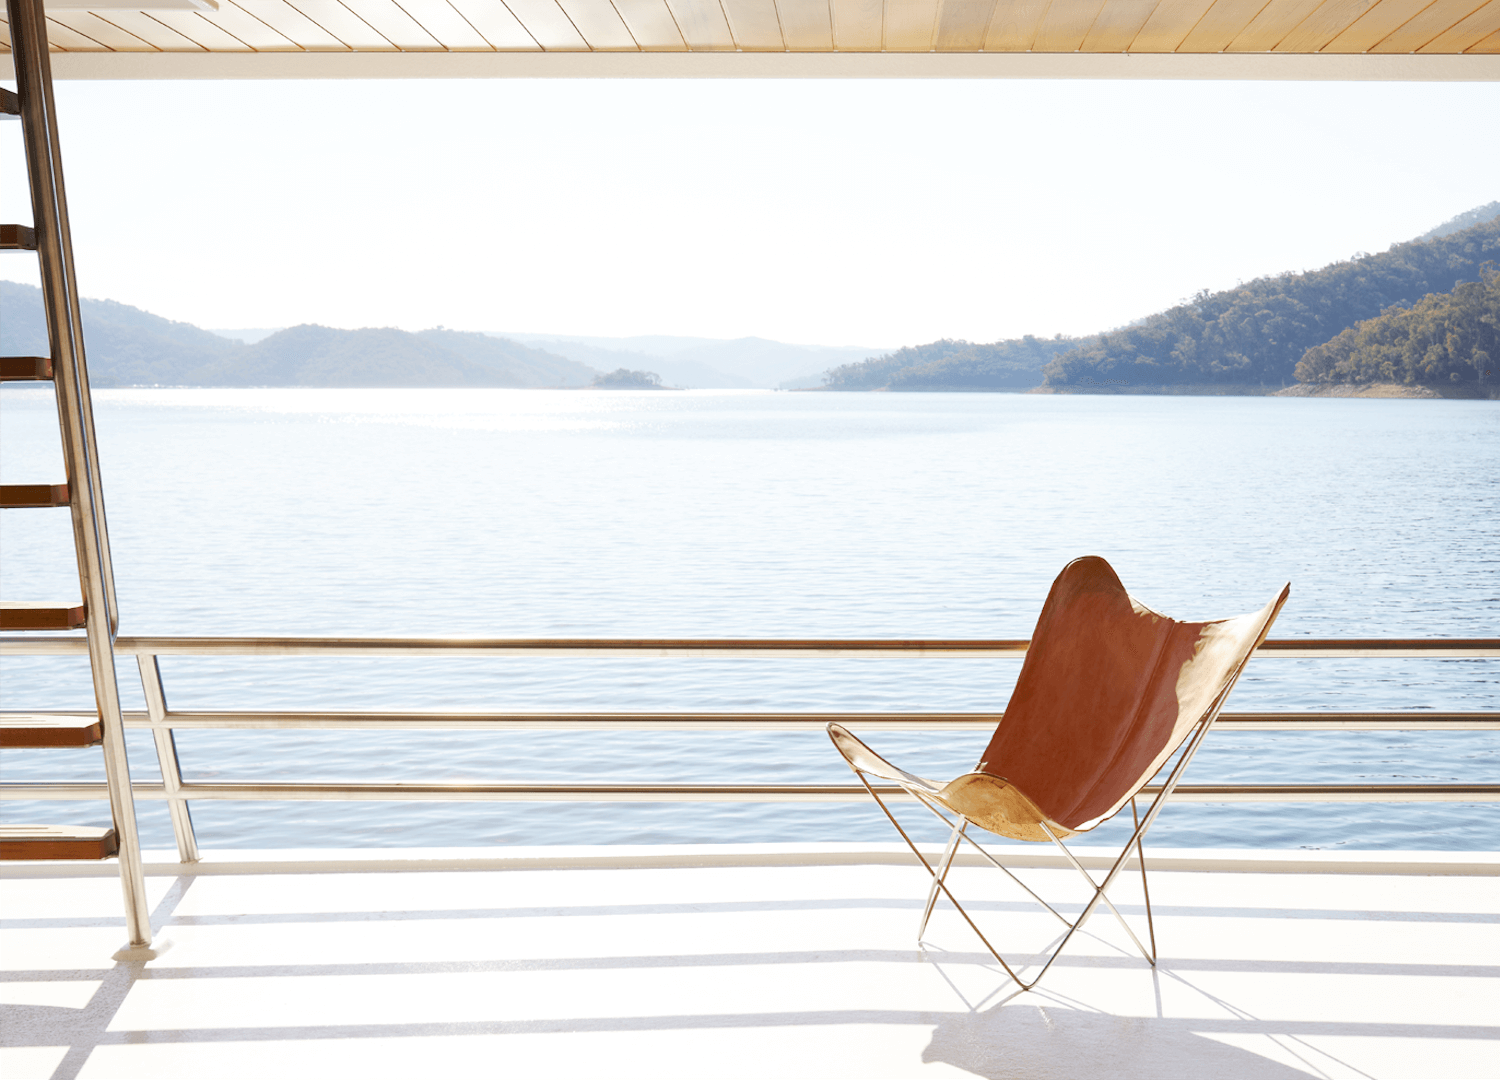 Est Collection: Houseboats | Lake Eildon Houseboat by Pipkorn & Kilpatrick